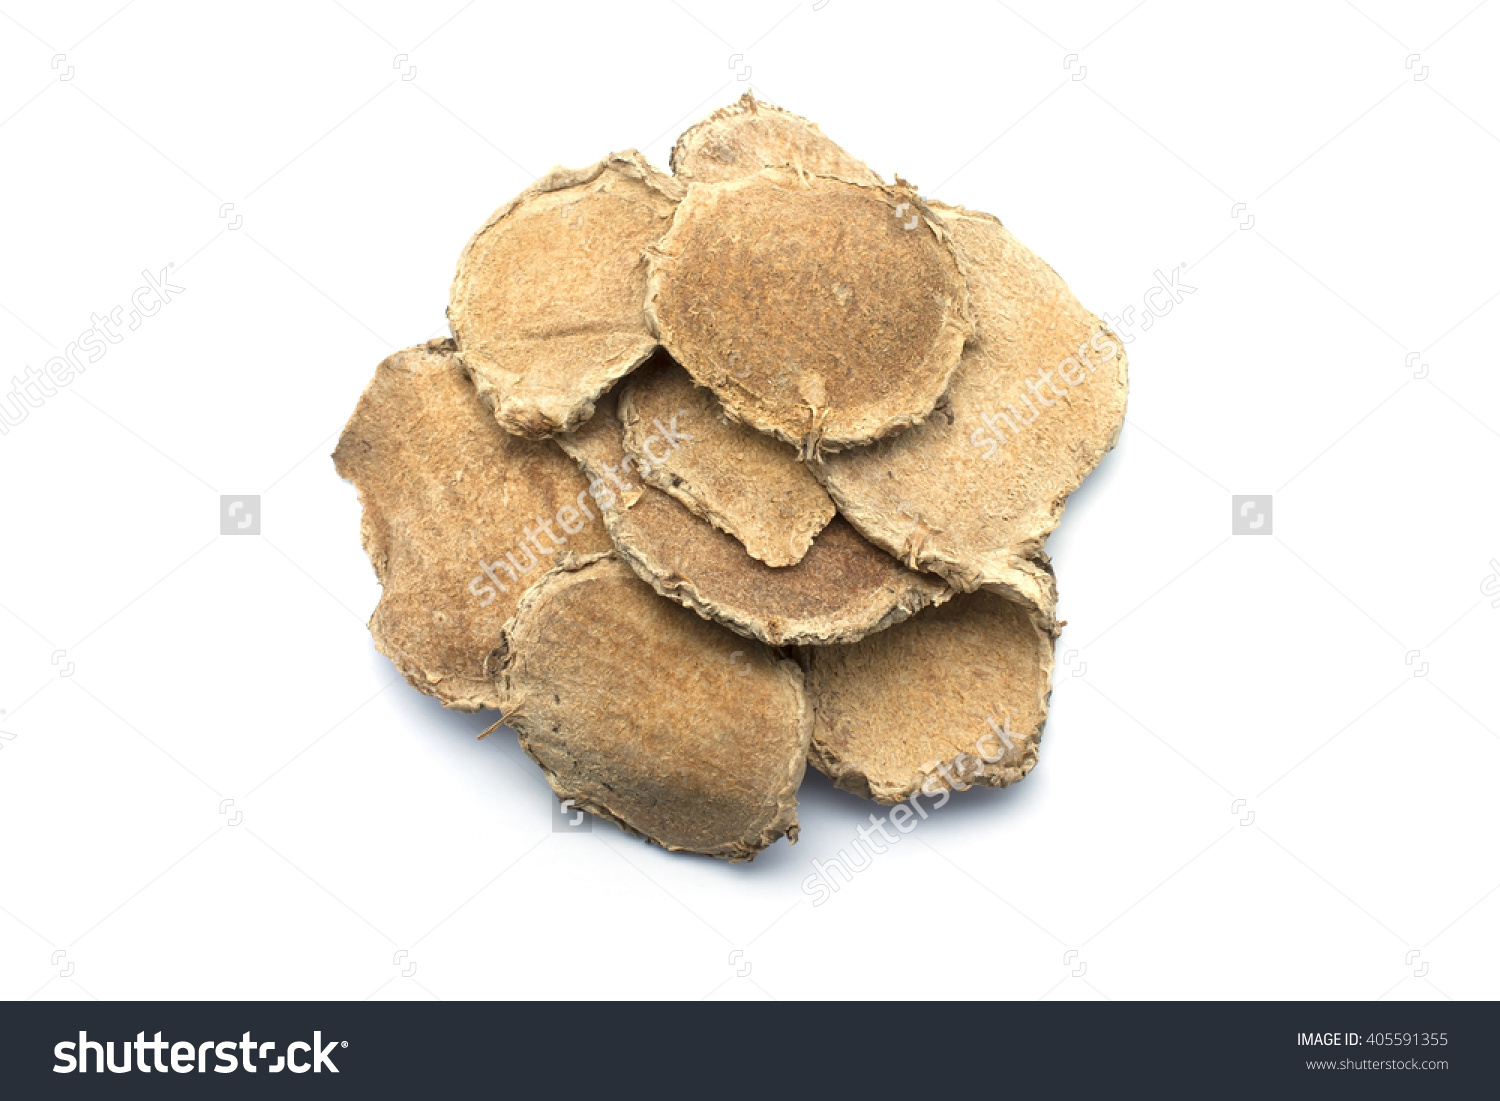 Slices Curcuma Comosa Dried Rhizome Herb Stock Photo 405591355.